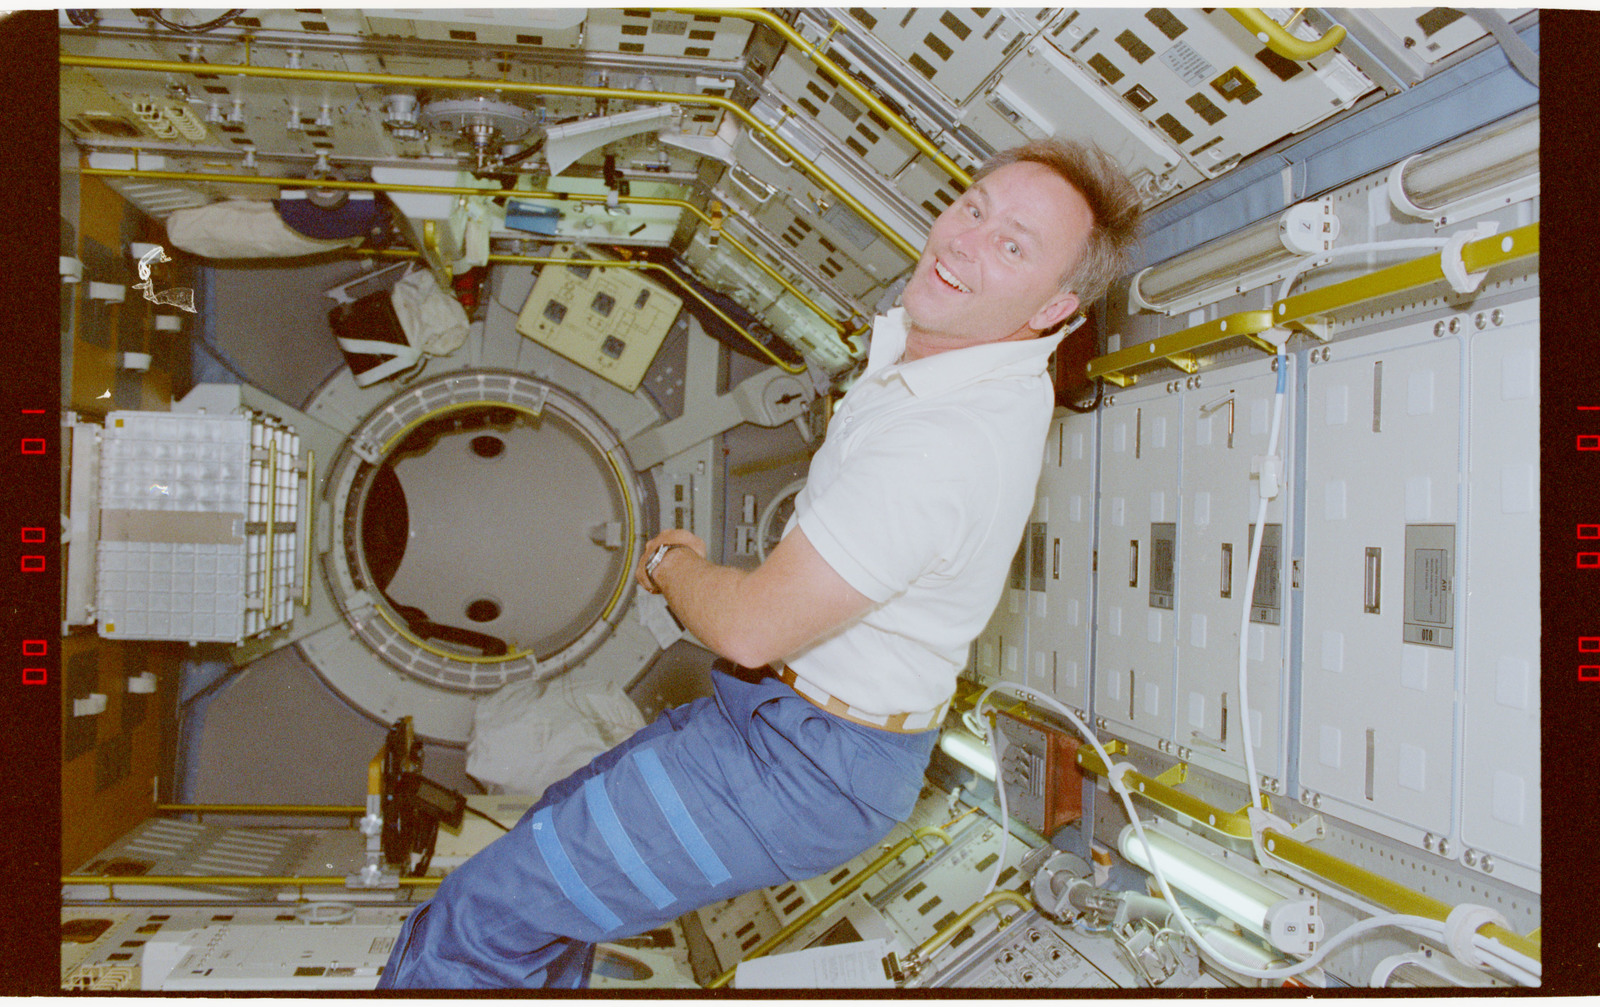 STS055-218-031 - STS-055 - Crewmember in the D-2 Spacelab.